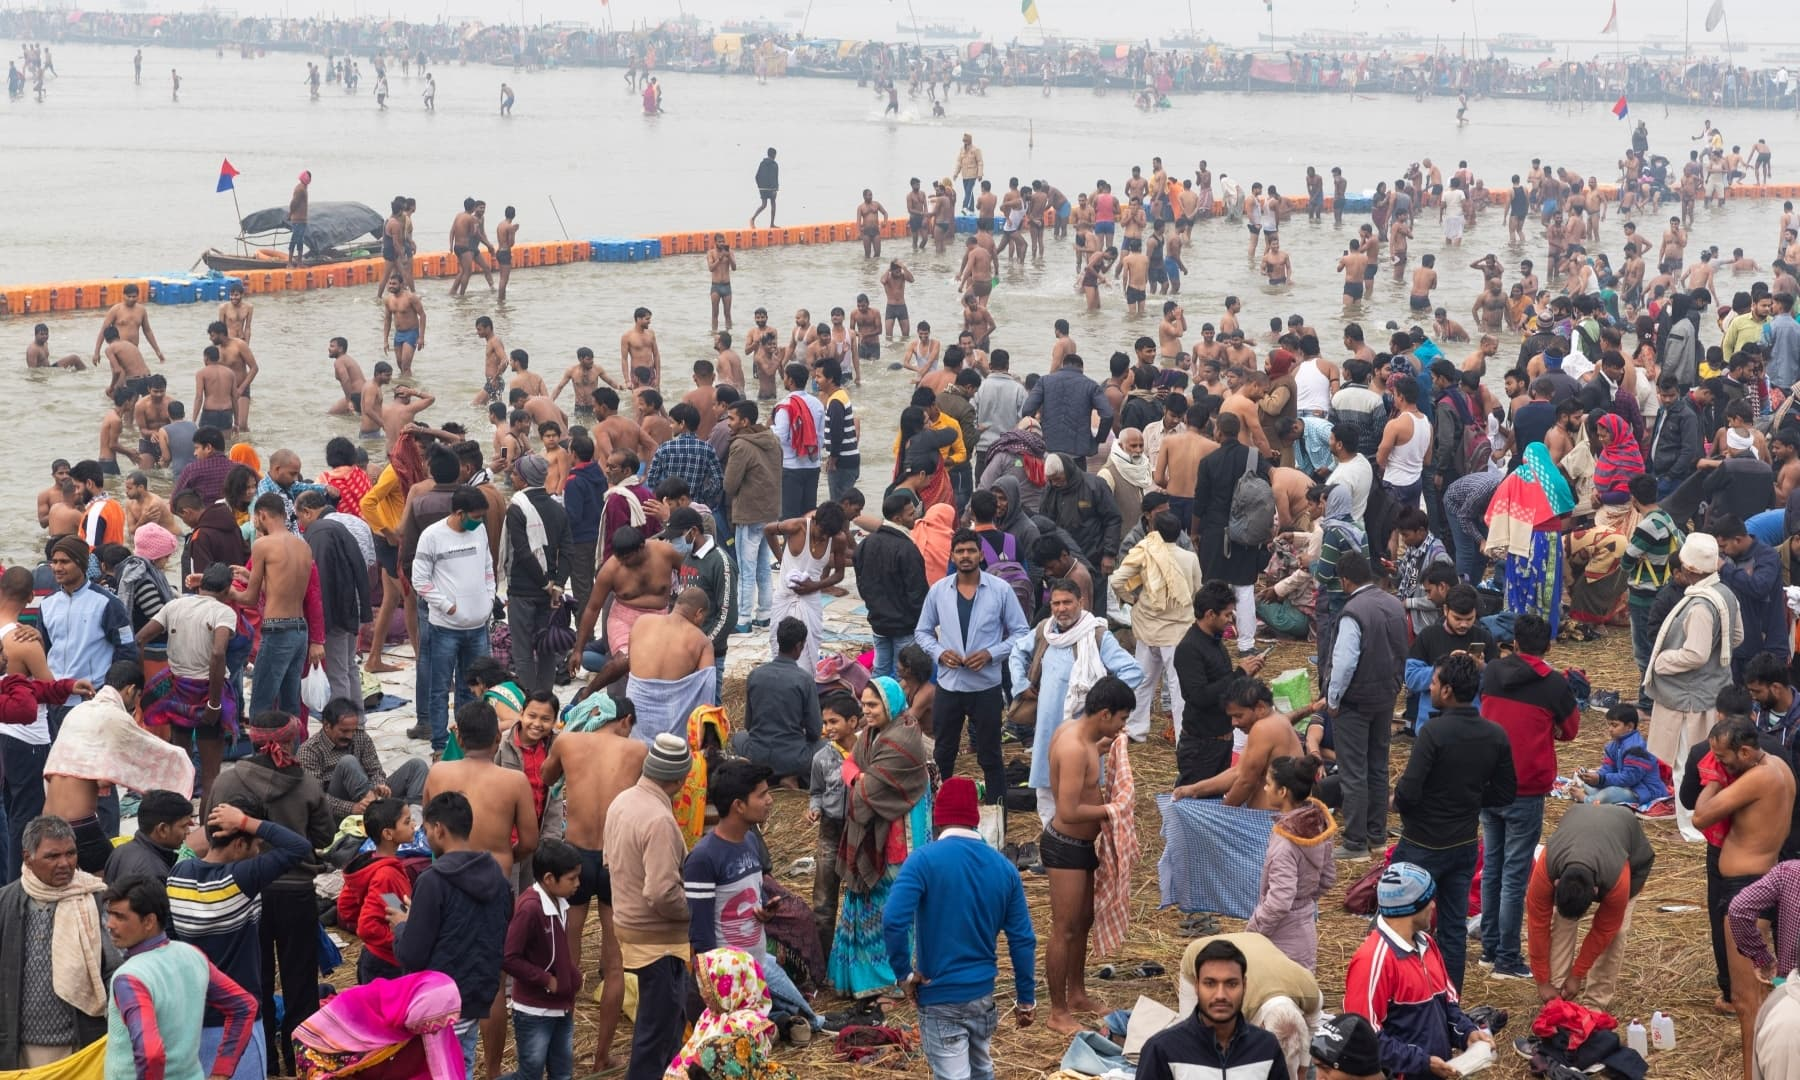 Hindu devotees crowd the confluence of the Ganges and Yamuna rivers to take a ritualistic bath during Makar Sankranti festival in Prayagraj, India, Thursday. — AP